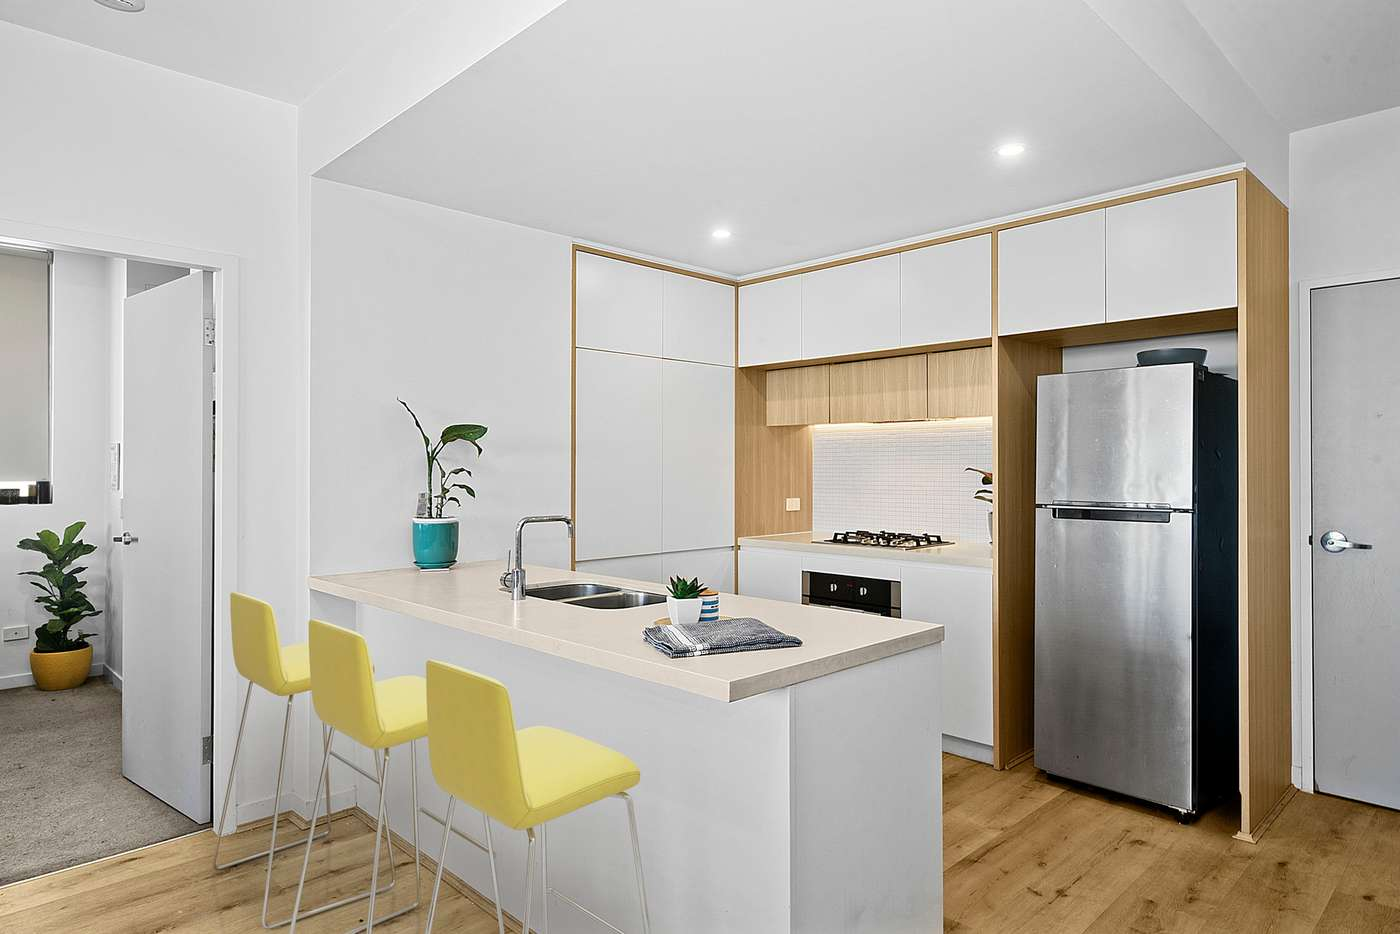 Main view of Homely apartment listing, 702/81B Lord Sheffield Circuit, Penrith NSW 2750